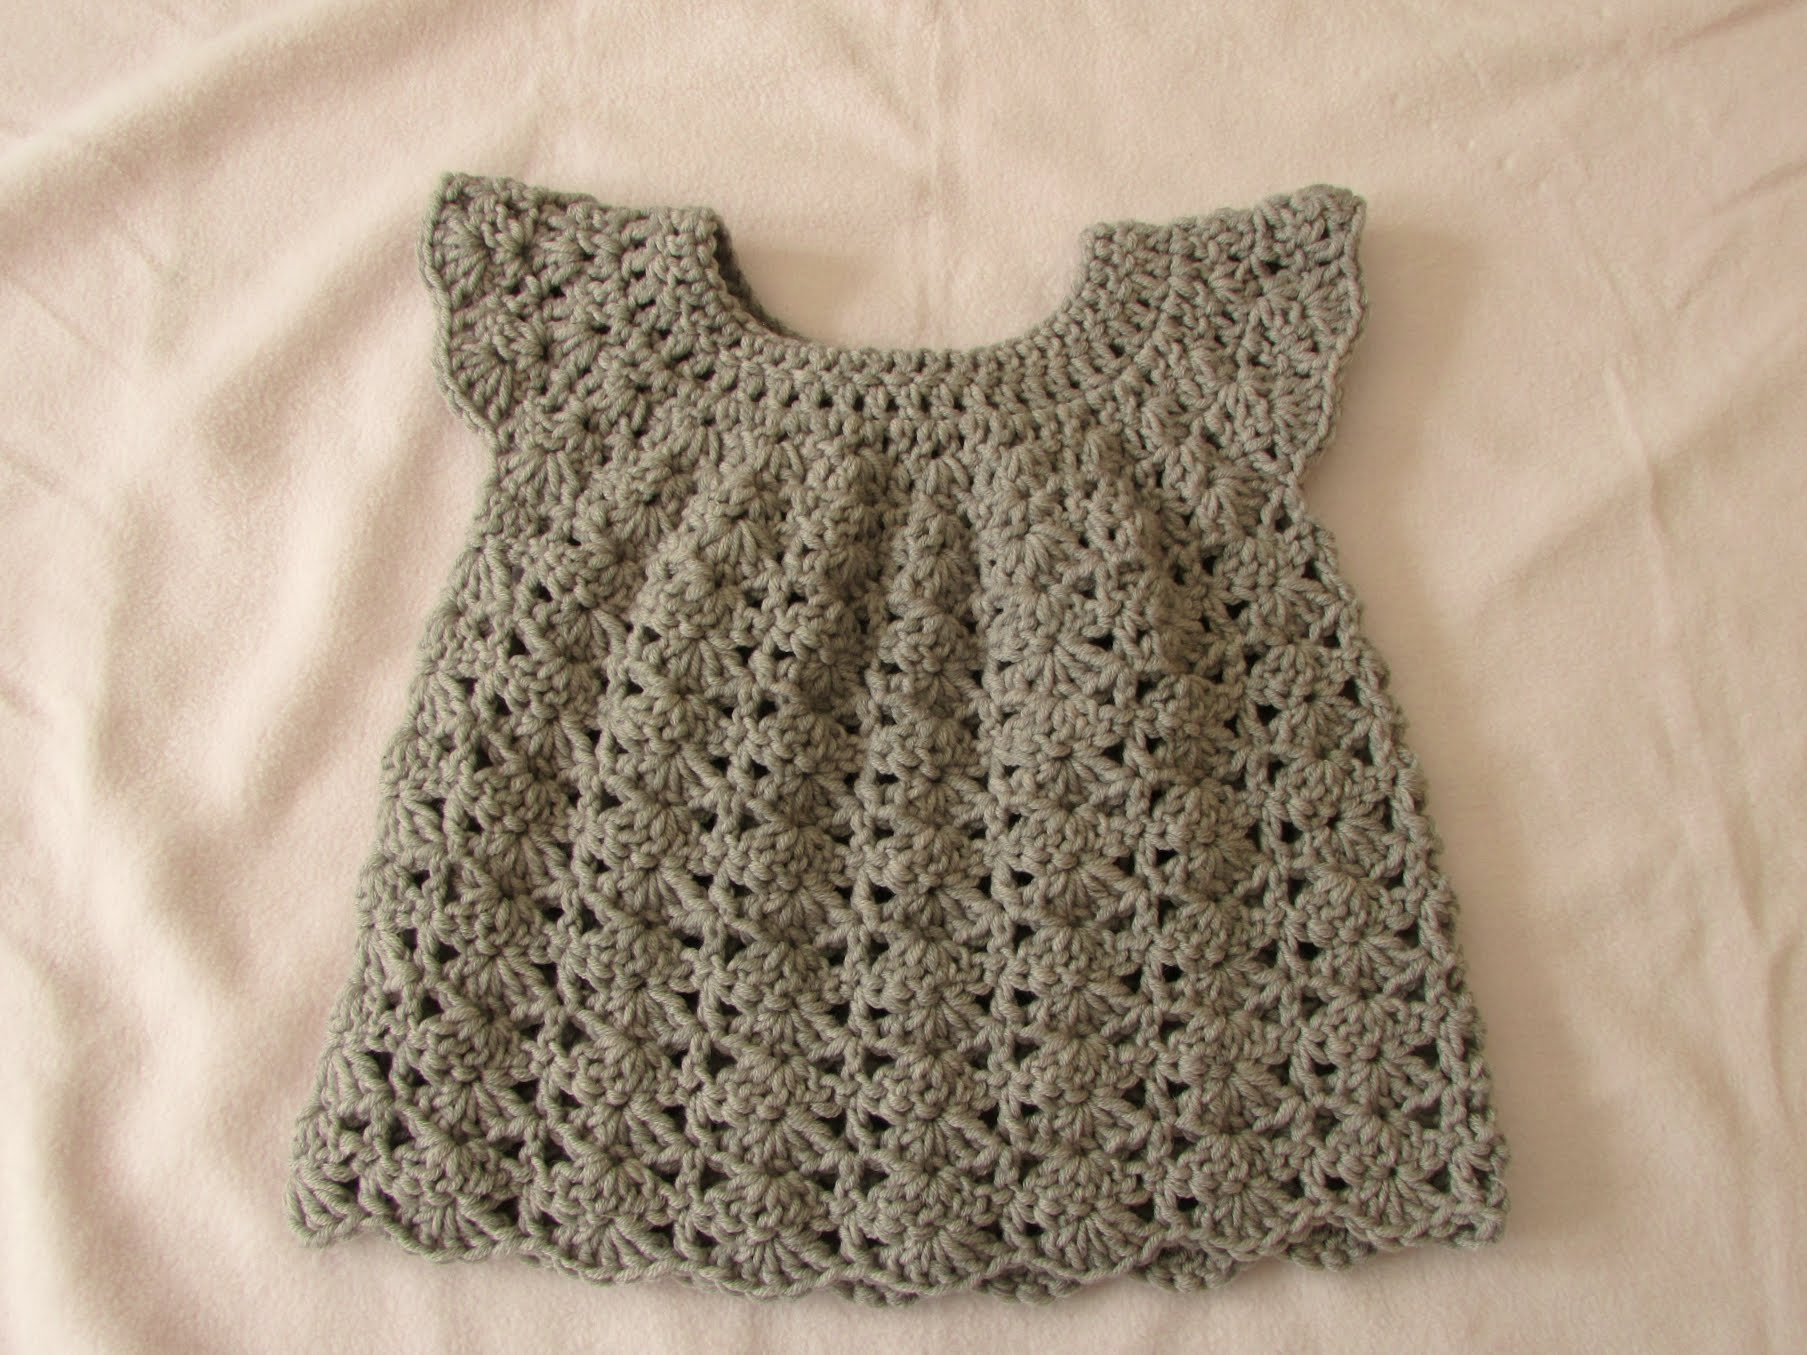 crochet baby dress how to crochet an easy shell stitch baby / girlu0027s dress for beginners semuzfg